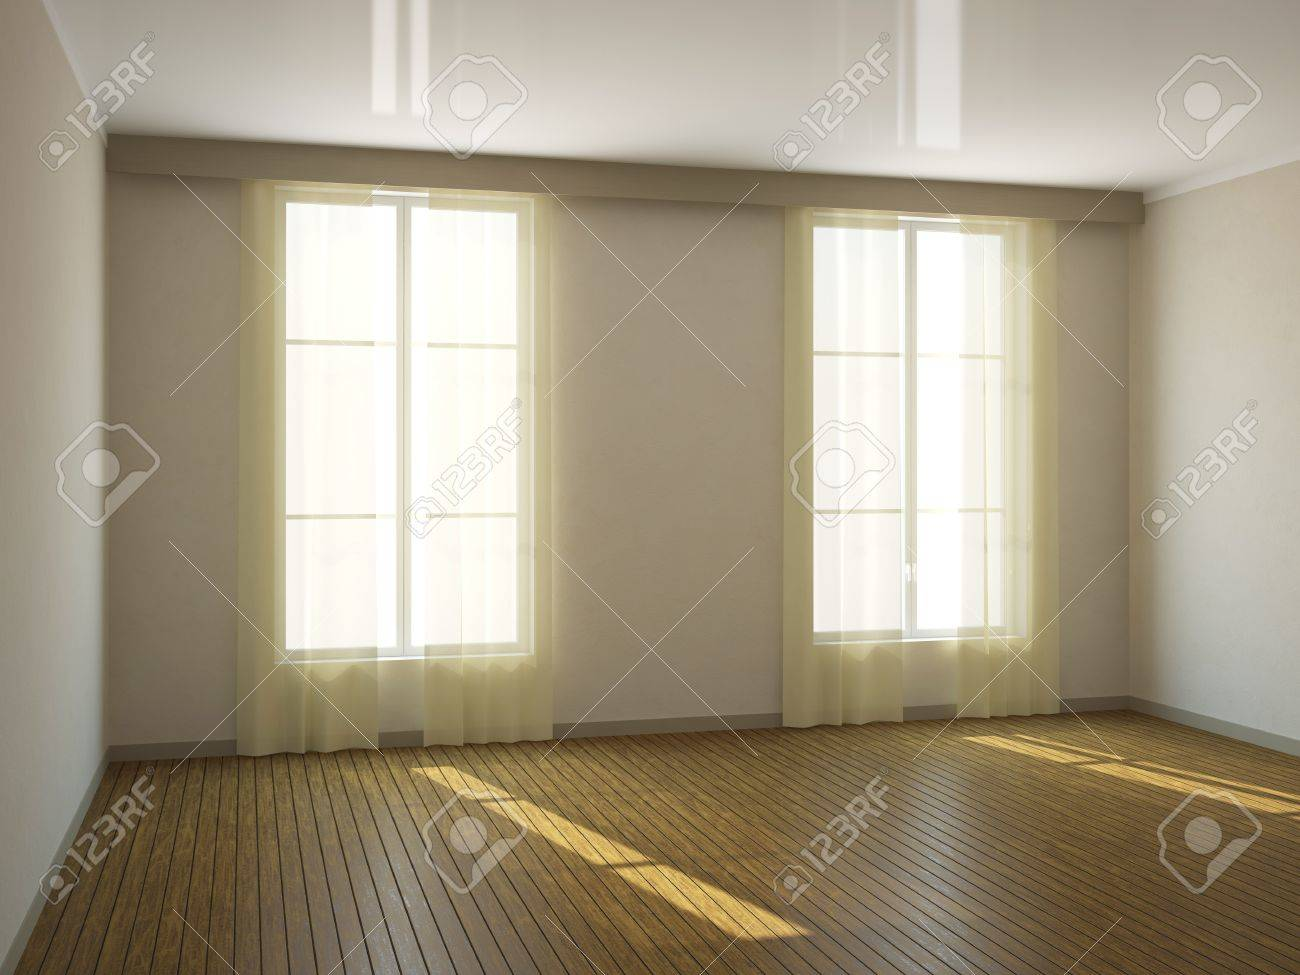 A large empty room with a window Stock Photo - 13729175